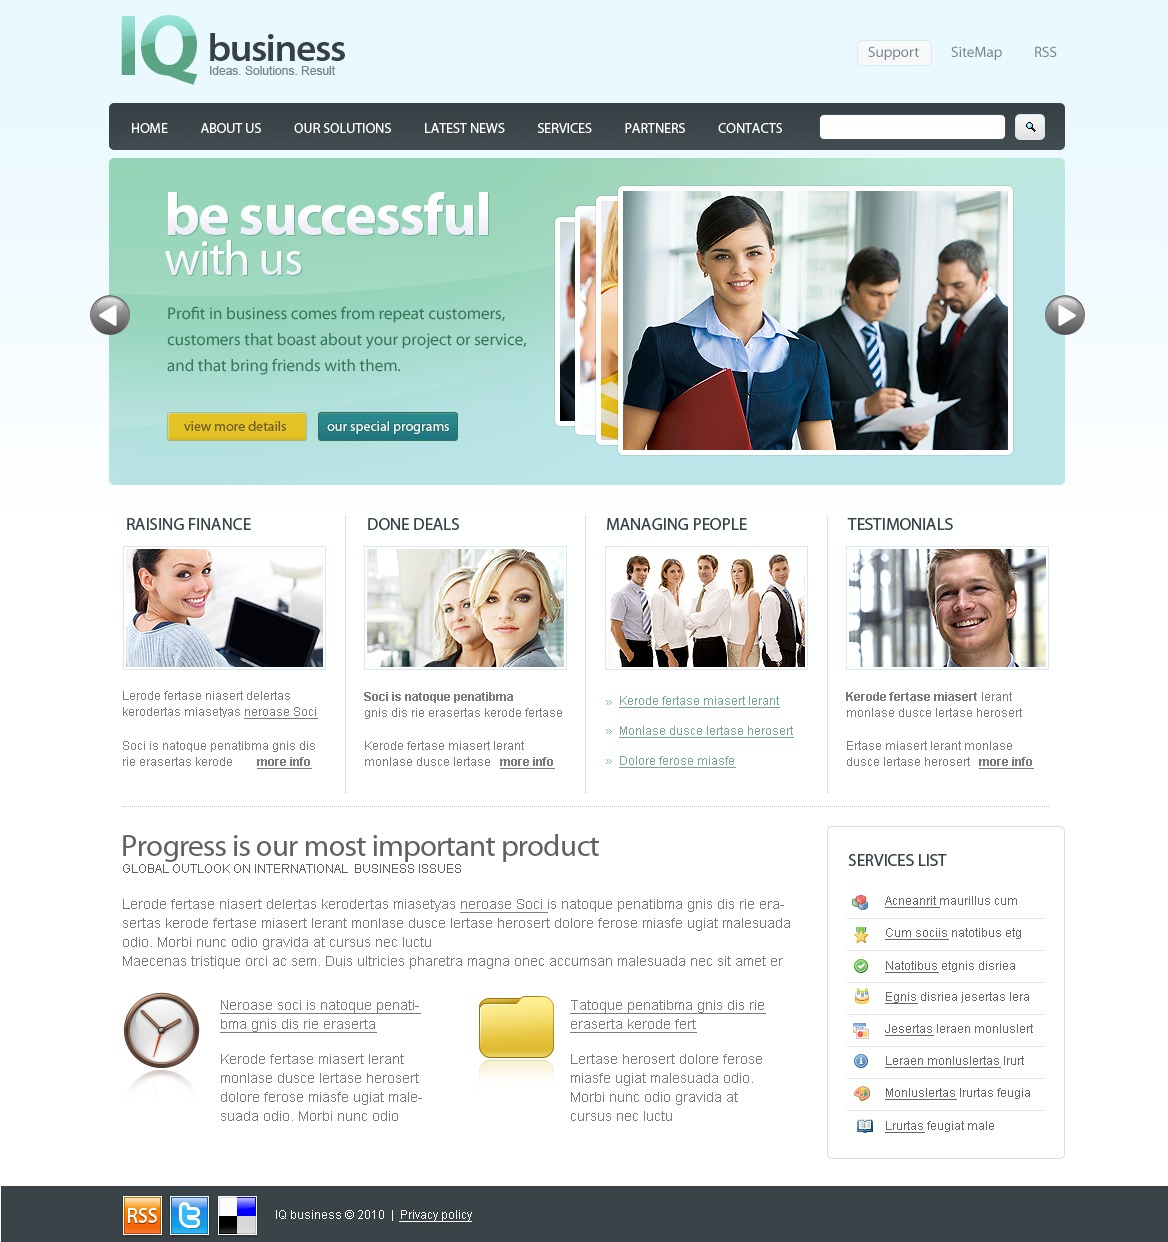 The Iq Business Company PSD Design 54191, one of the best PSD templates of its kind (business, wide, jquery), also known as iq business company PSD template, corporate solutions PSD template, innovations PSD template, contacts PSD template, service PSD template, support PSD template, information dealer PSD template, stocks PSD template, team PSD template, success PSD template, money PSD template, marketing PSD template, director PSD template, manager PSD template, analytics PSD template, planning PSD template, limited PSD template, office PSD template, sales and related with iq business company, corporate solutions, innovations, contacts, service, support, information dealer, stocks, team, success, money, marketing, director, manager, analytics, planning, limited, office, sales, etc.